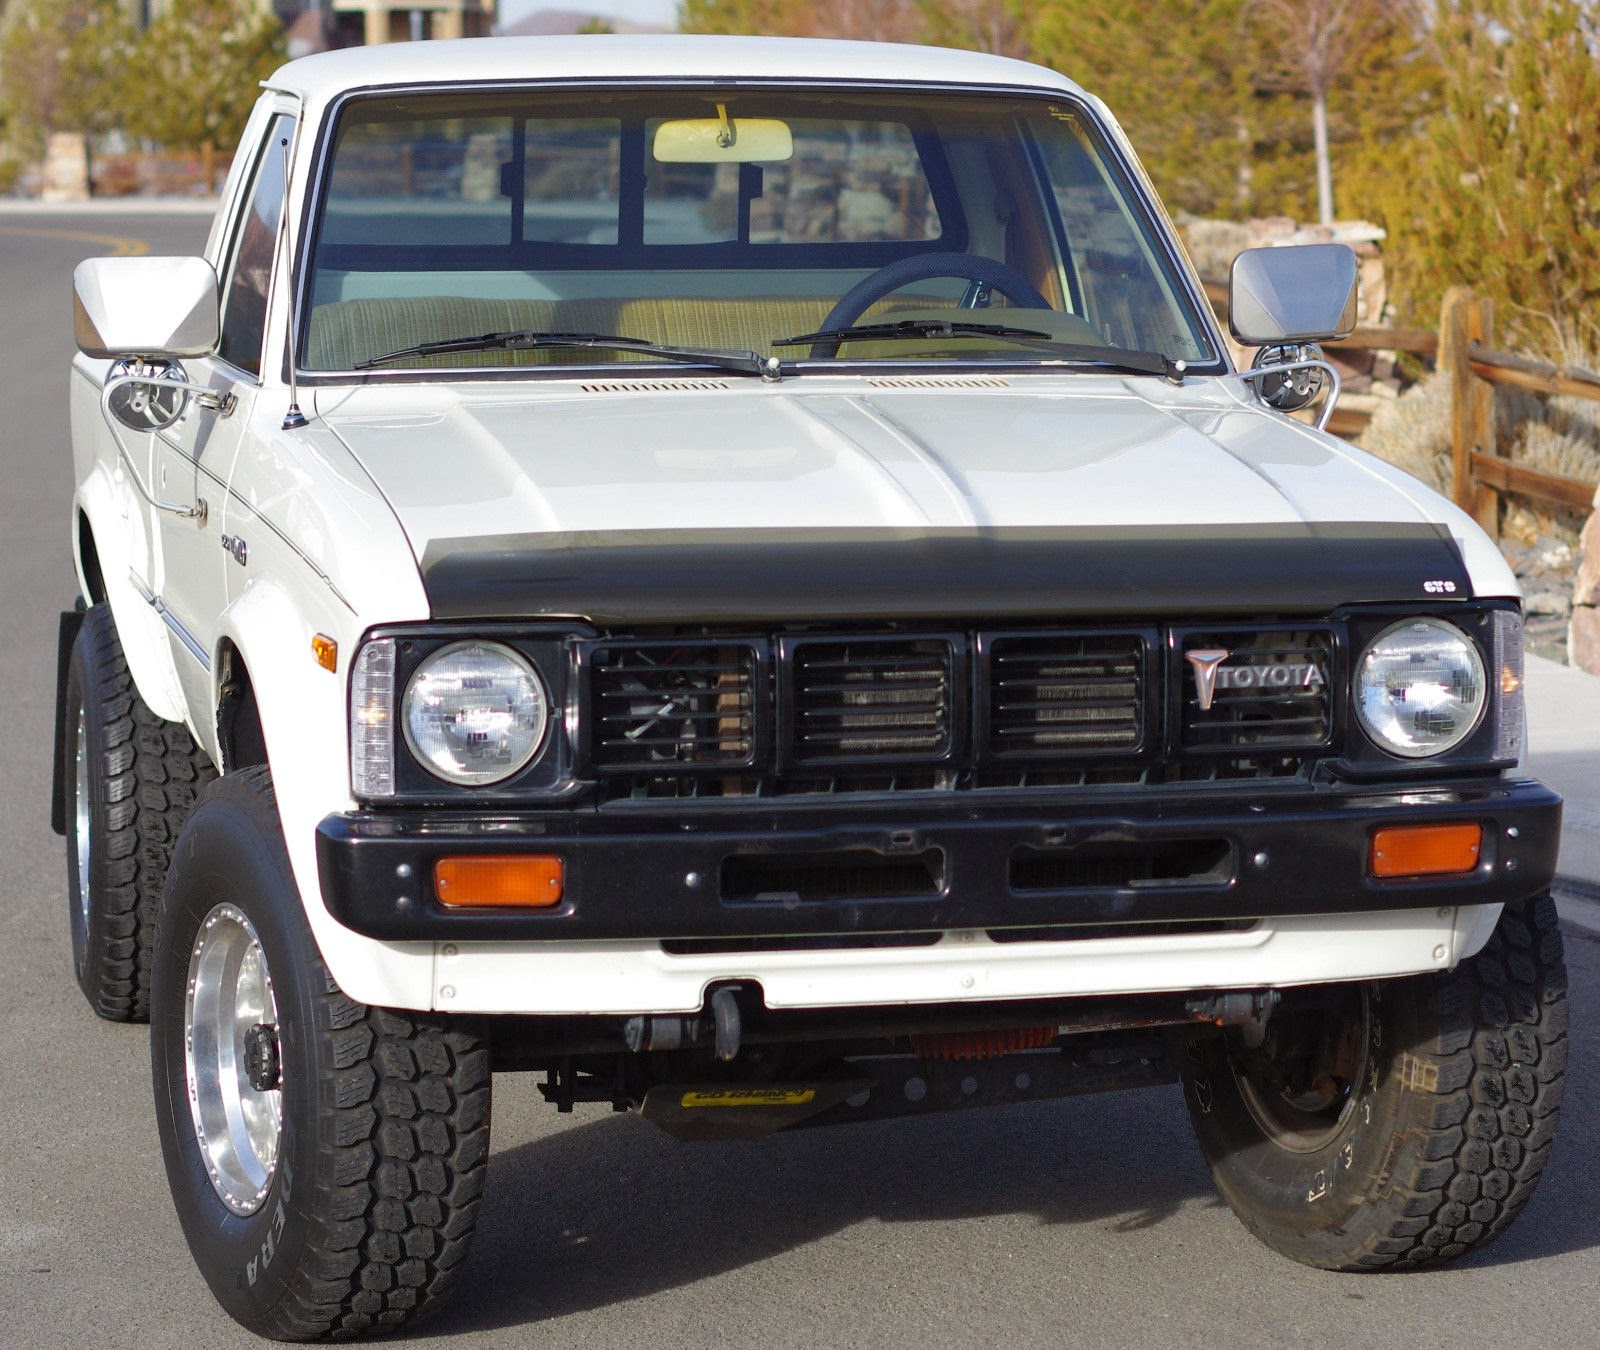 5k seller submission 1980 toyota hilux 4x4 pickup